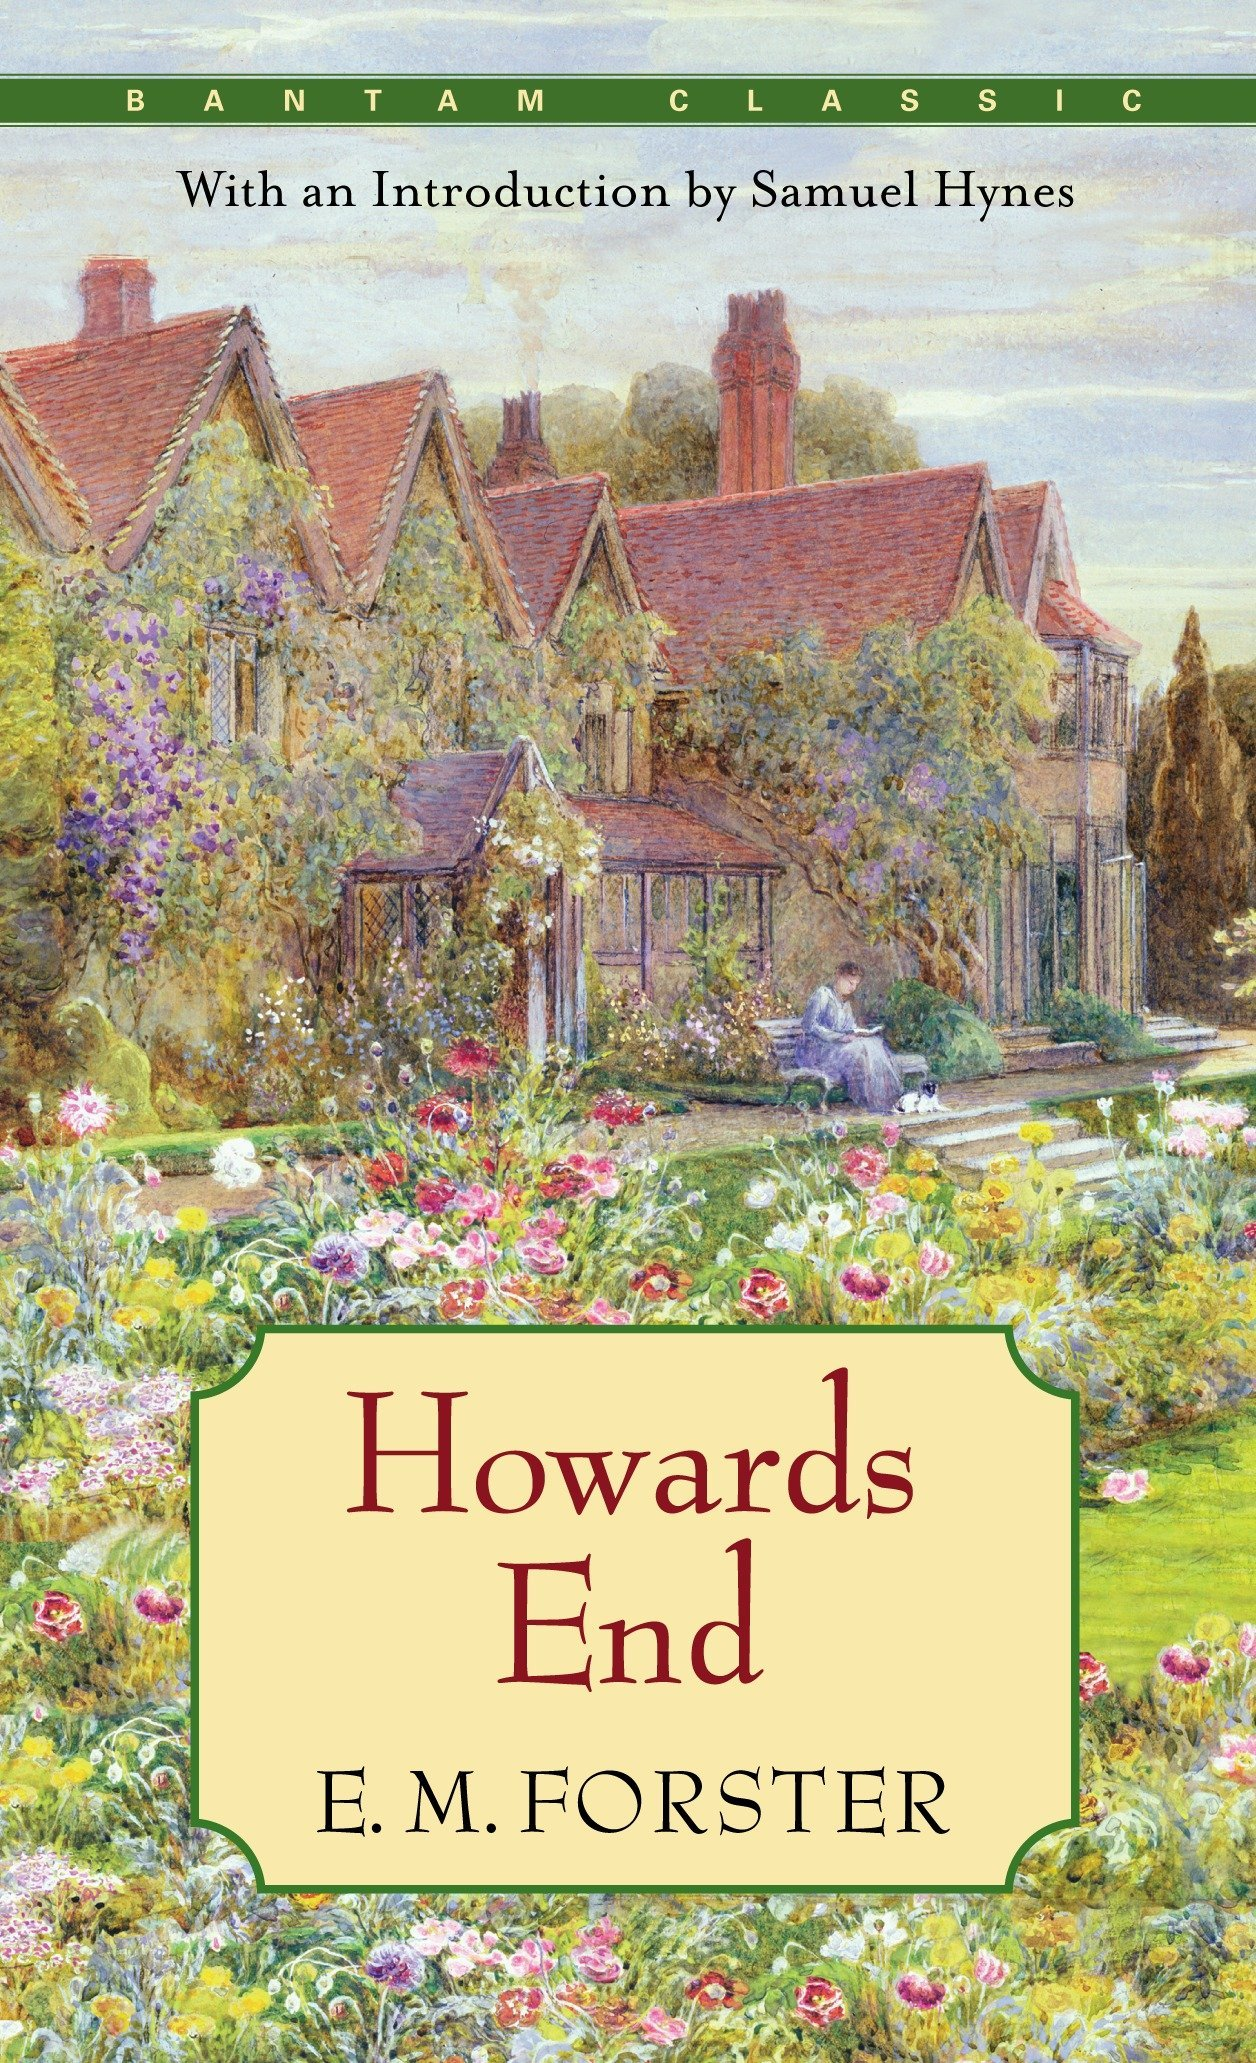 Howards End (Bantam Classic): Amazon.es: Edward Morgan Forster: Libros en idiomas extranjeros